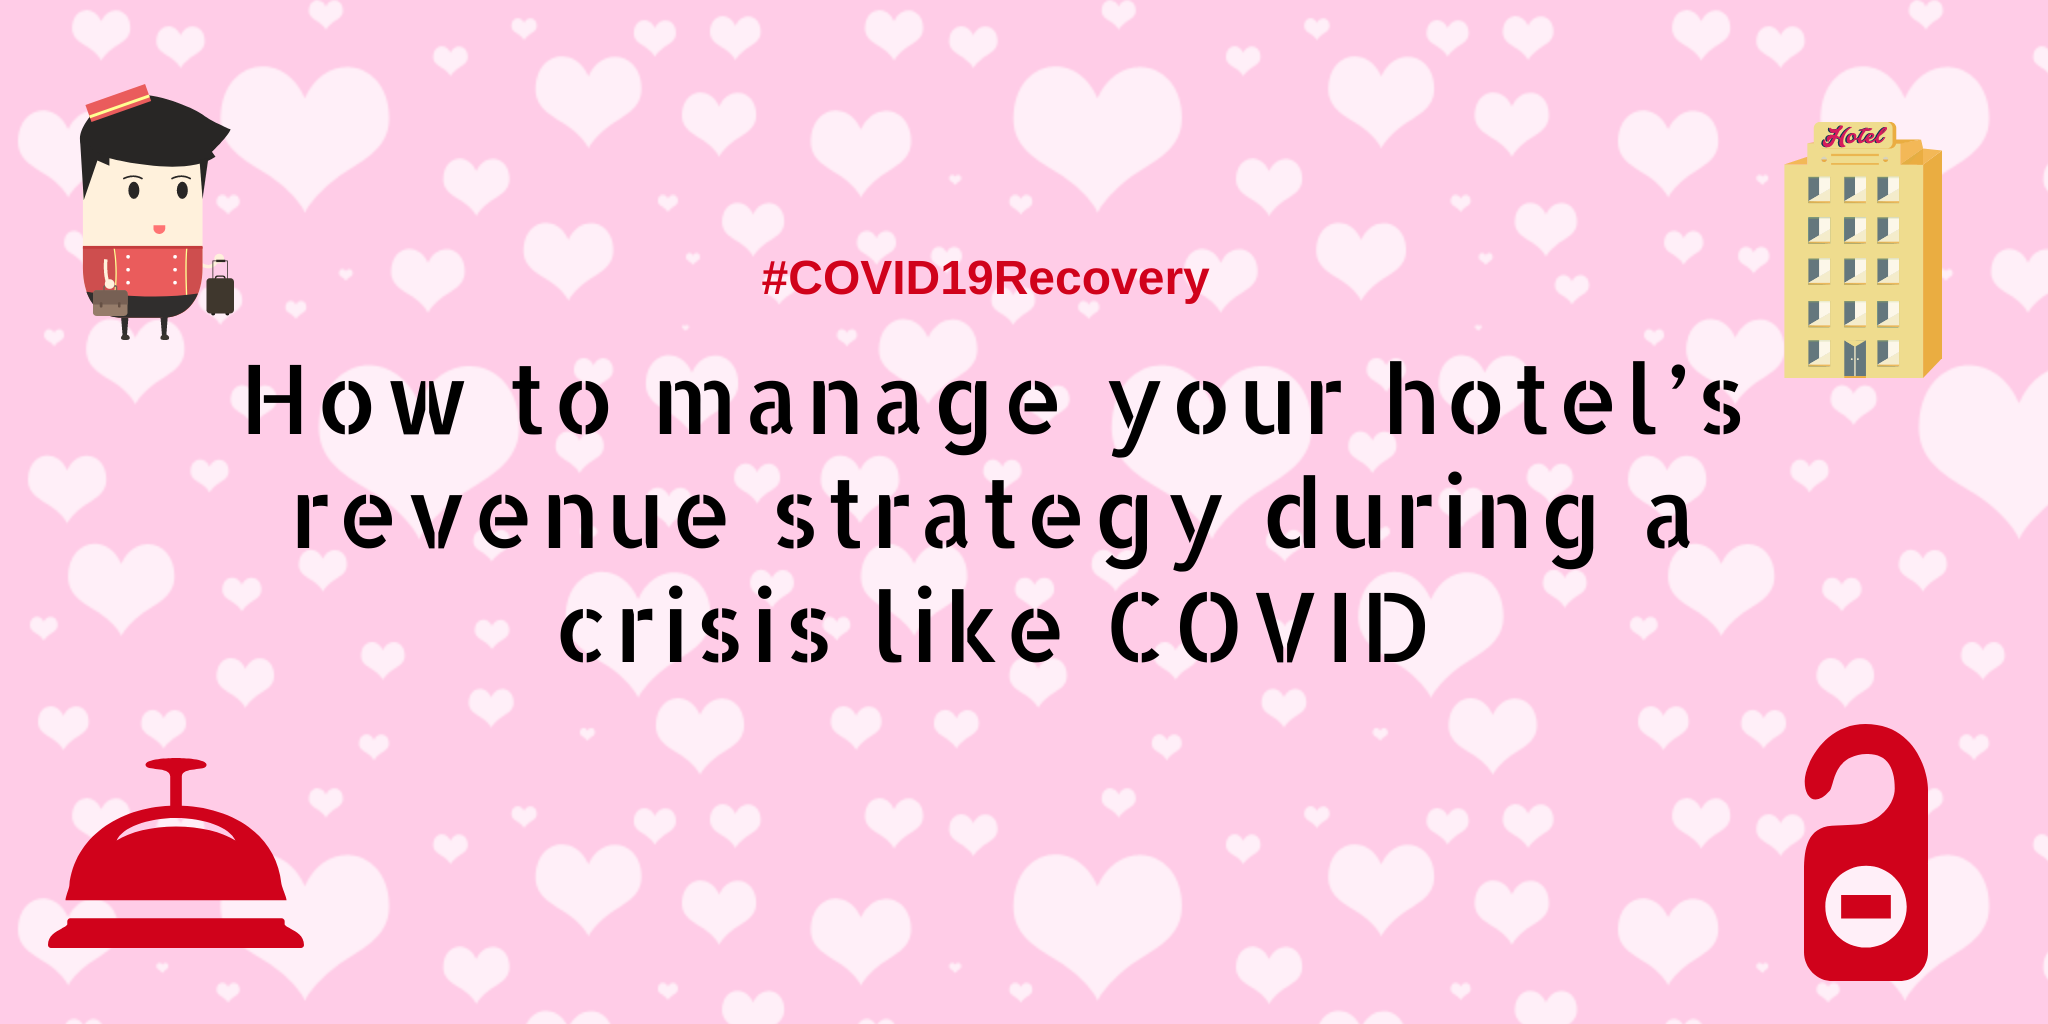 How to manage your hotel's revenue strategy during a crisis like COVID